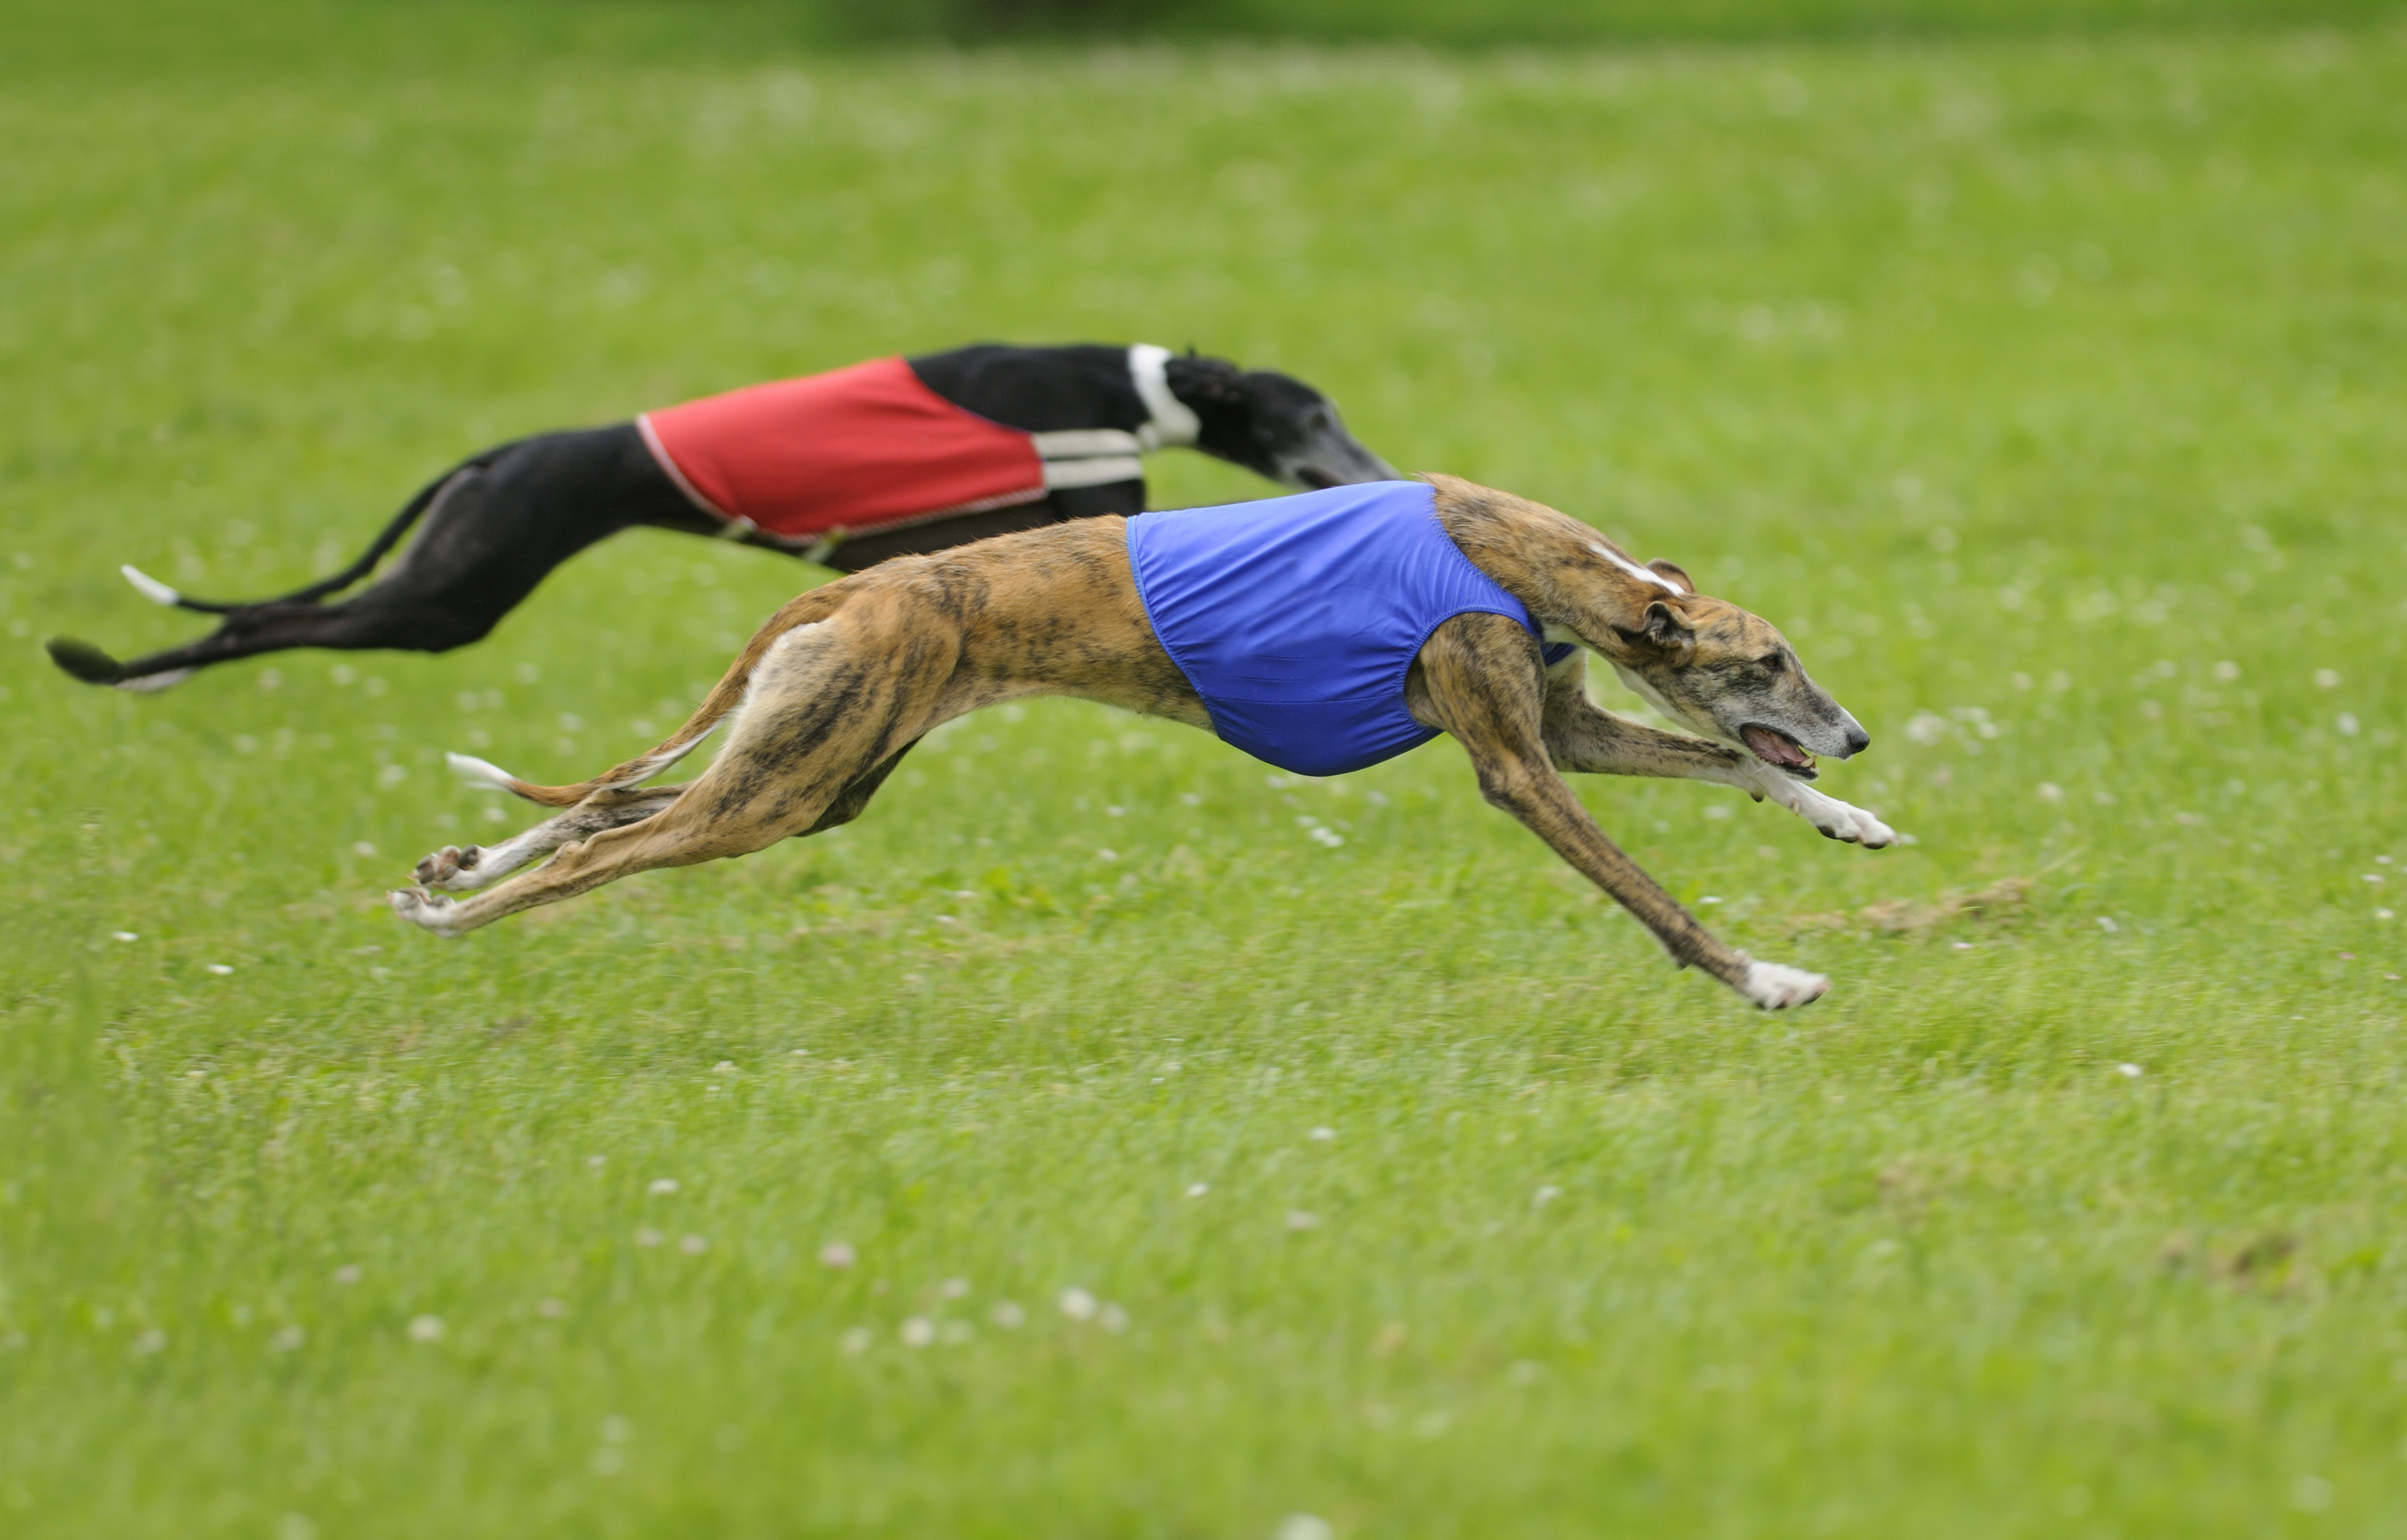 Lure-coursing is a sport created for Sighthounds, like these Greyhounds (above), to simulate a rabbit hunt. Today, all breeds can try a modified version of this sport with the CAT, or Coursing Ability Test (below).